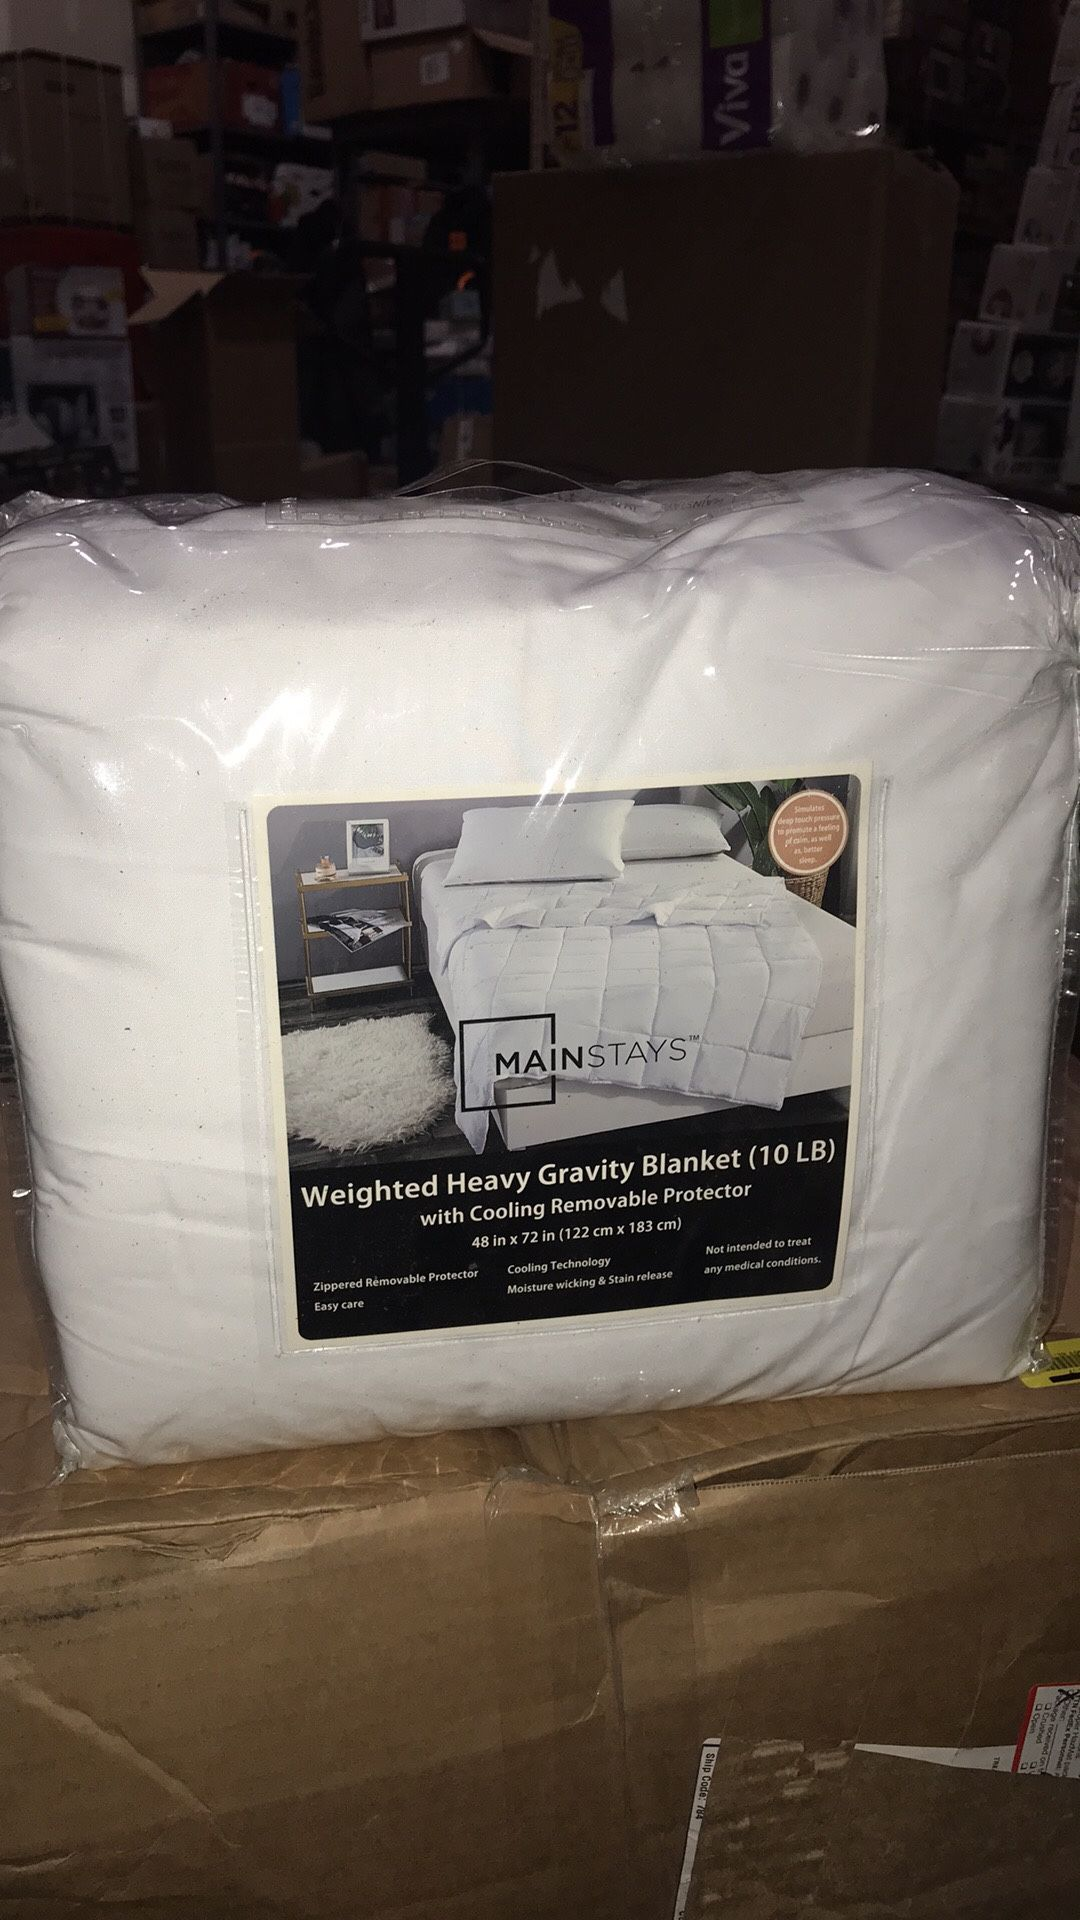 Mainstays Weighted Heavy Blanket with Cooling Removable Protector, 48x72 10lbs New